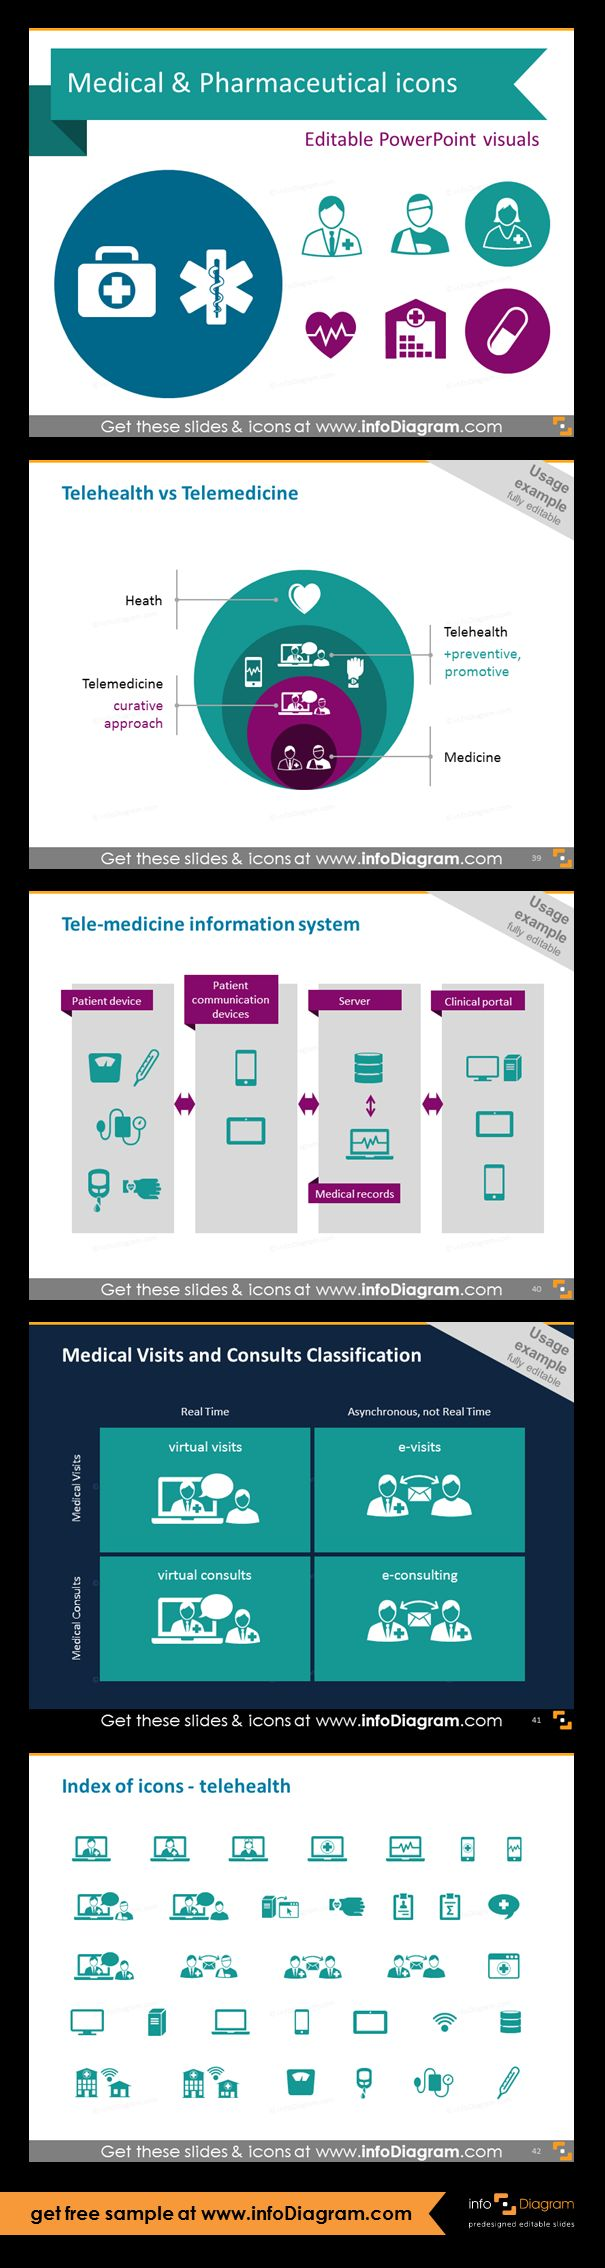 Telehealth and telemedicine DIY infographics: telemedicine information system, telehealth vs telemedicine, medical visits and consultants classification. Icons: virtual visit, videoconference, virtual consultation, e-visit, e-consults, medical app, medical software, medical conversation, telehealth, monitor, computer, notebook, mobile, tablet, Wi-Fi, server, medical monitoring, patient data, weight, thermometer, blood pressure, glucometer.